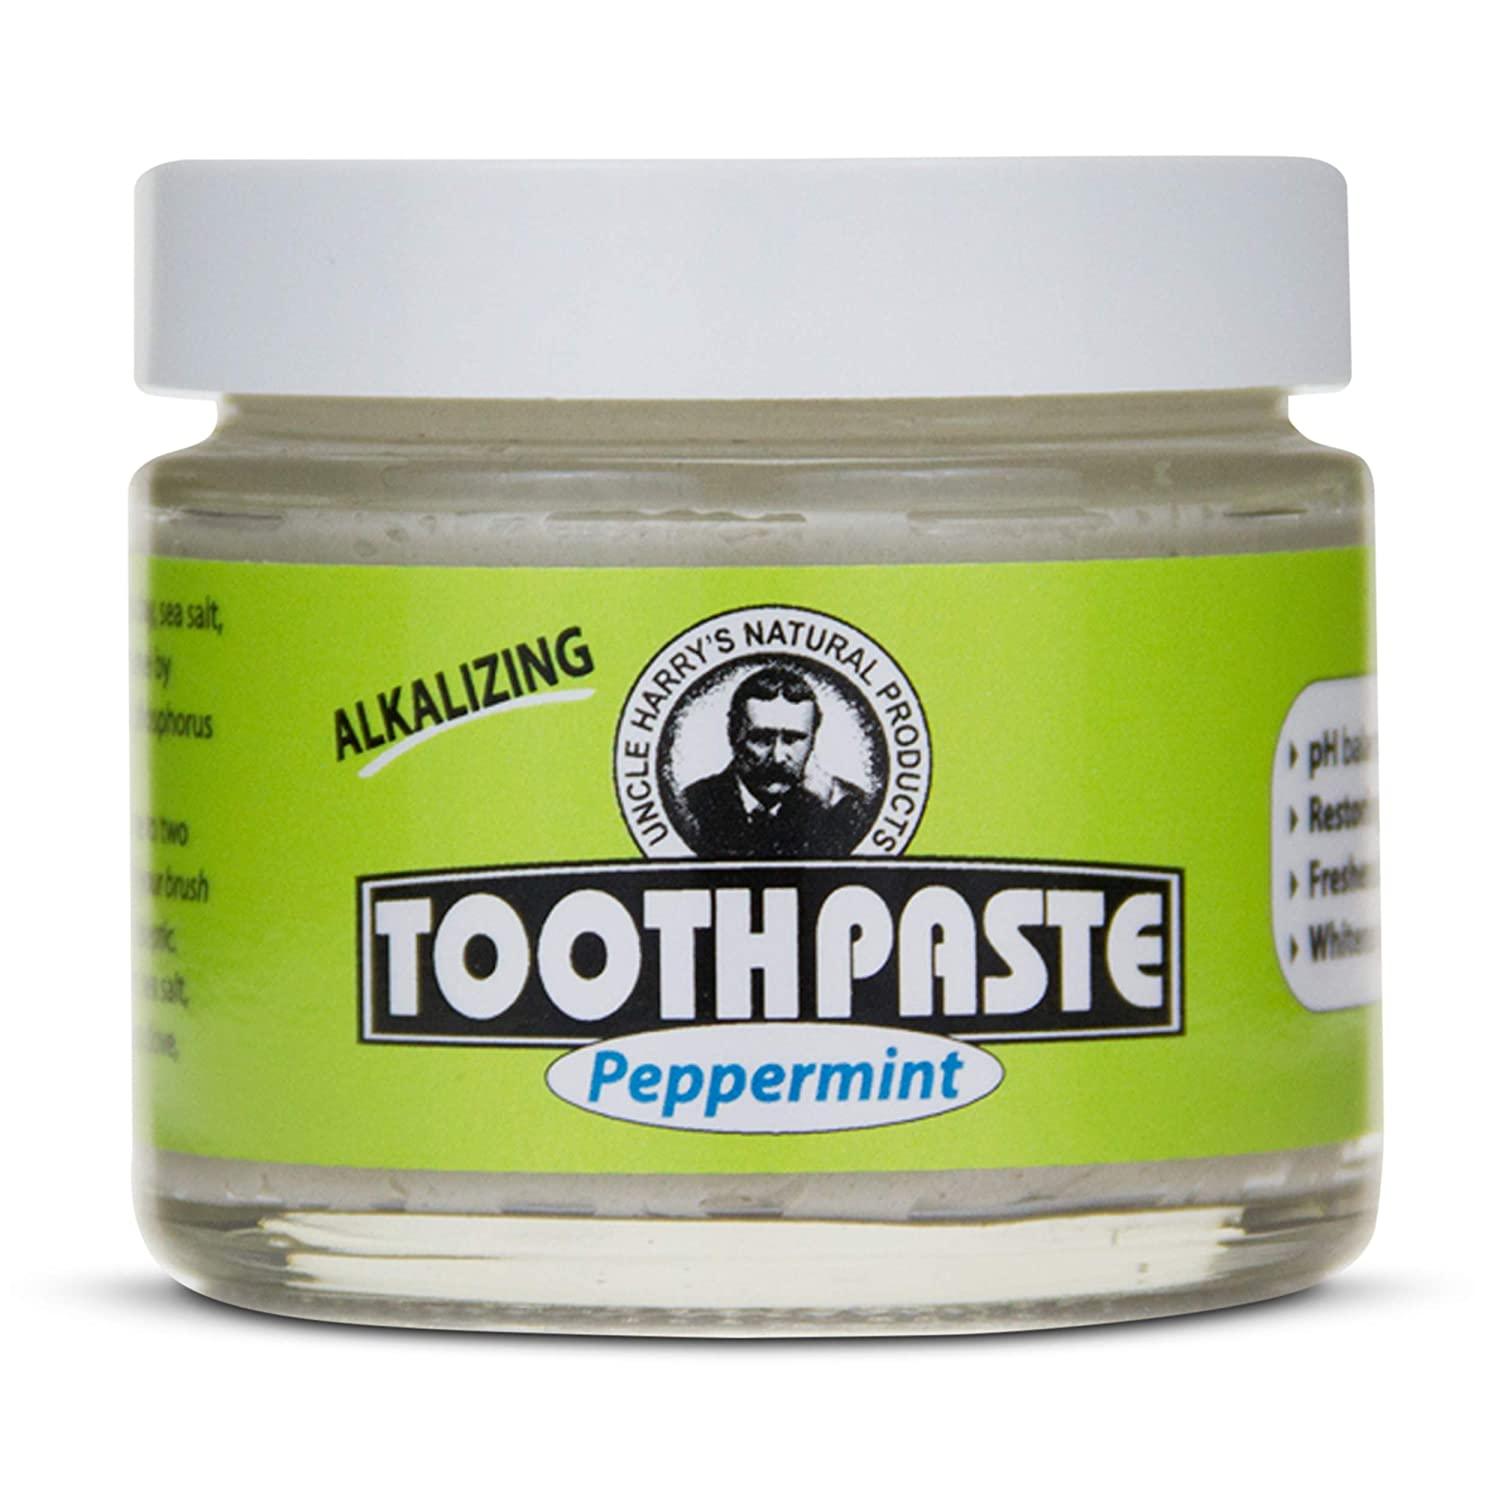 Uncle Harry's Classic Peppermint overseas Remineralizing Natural Toothpaste Whi